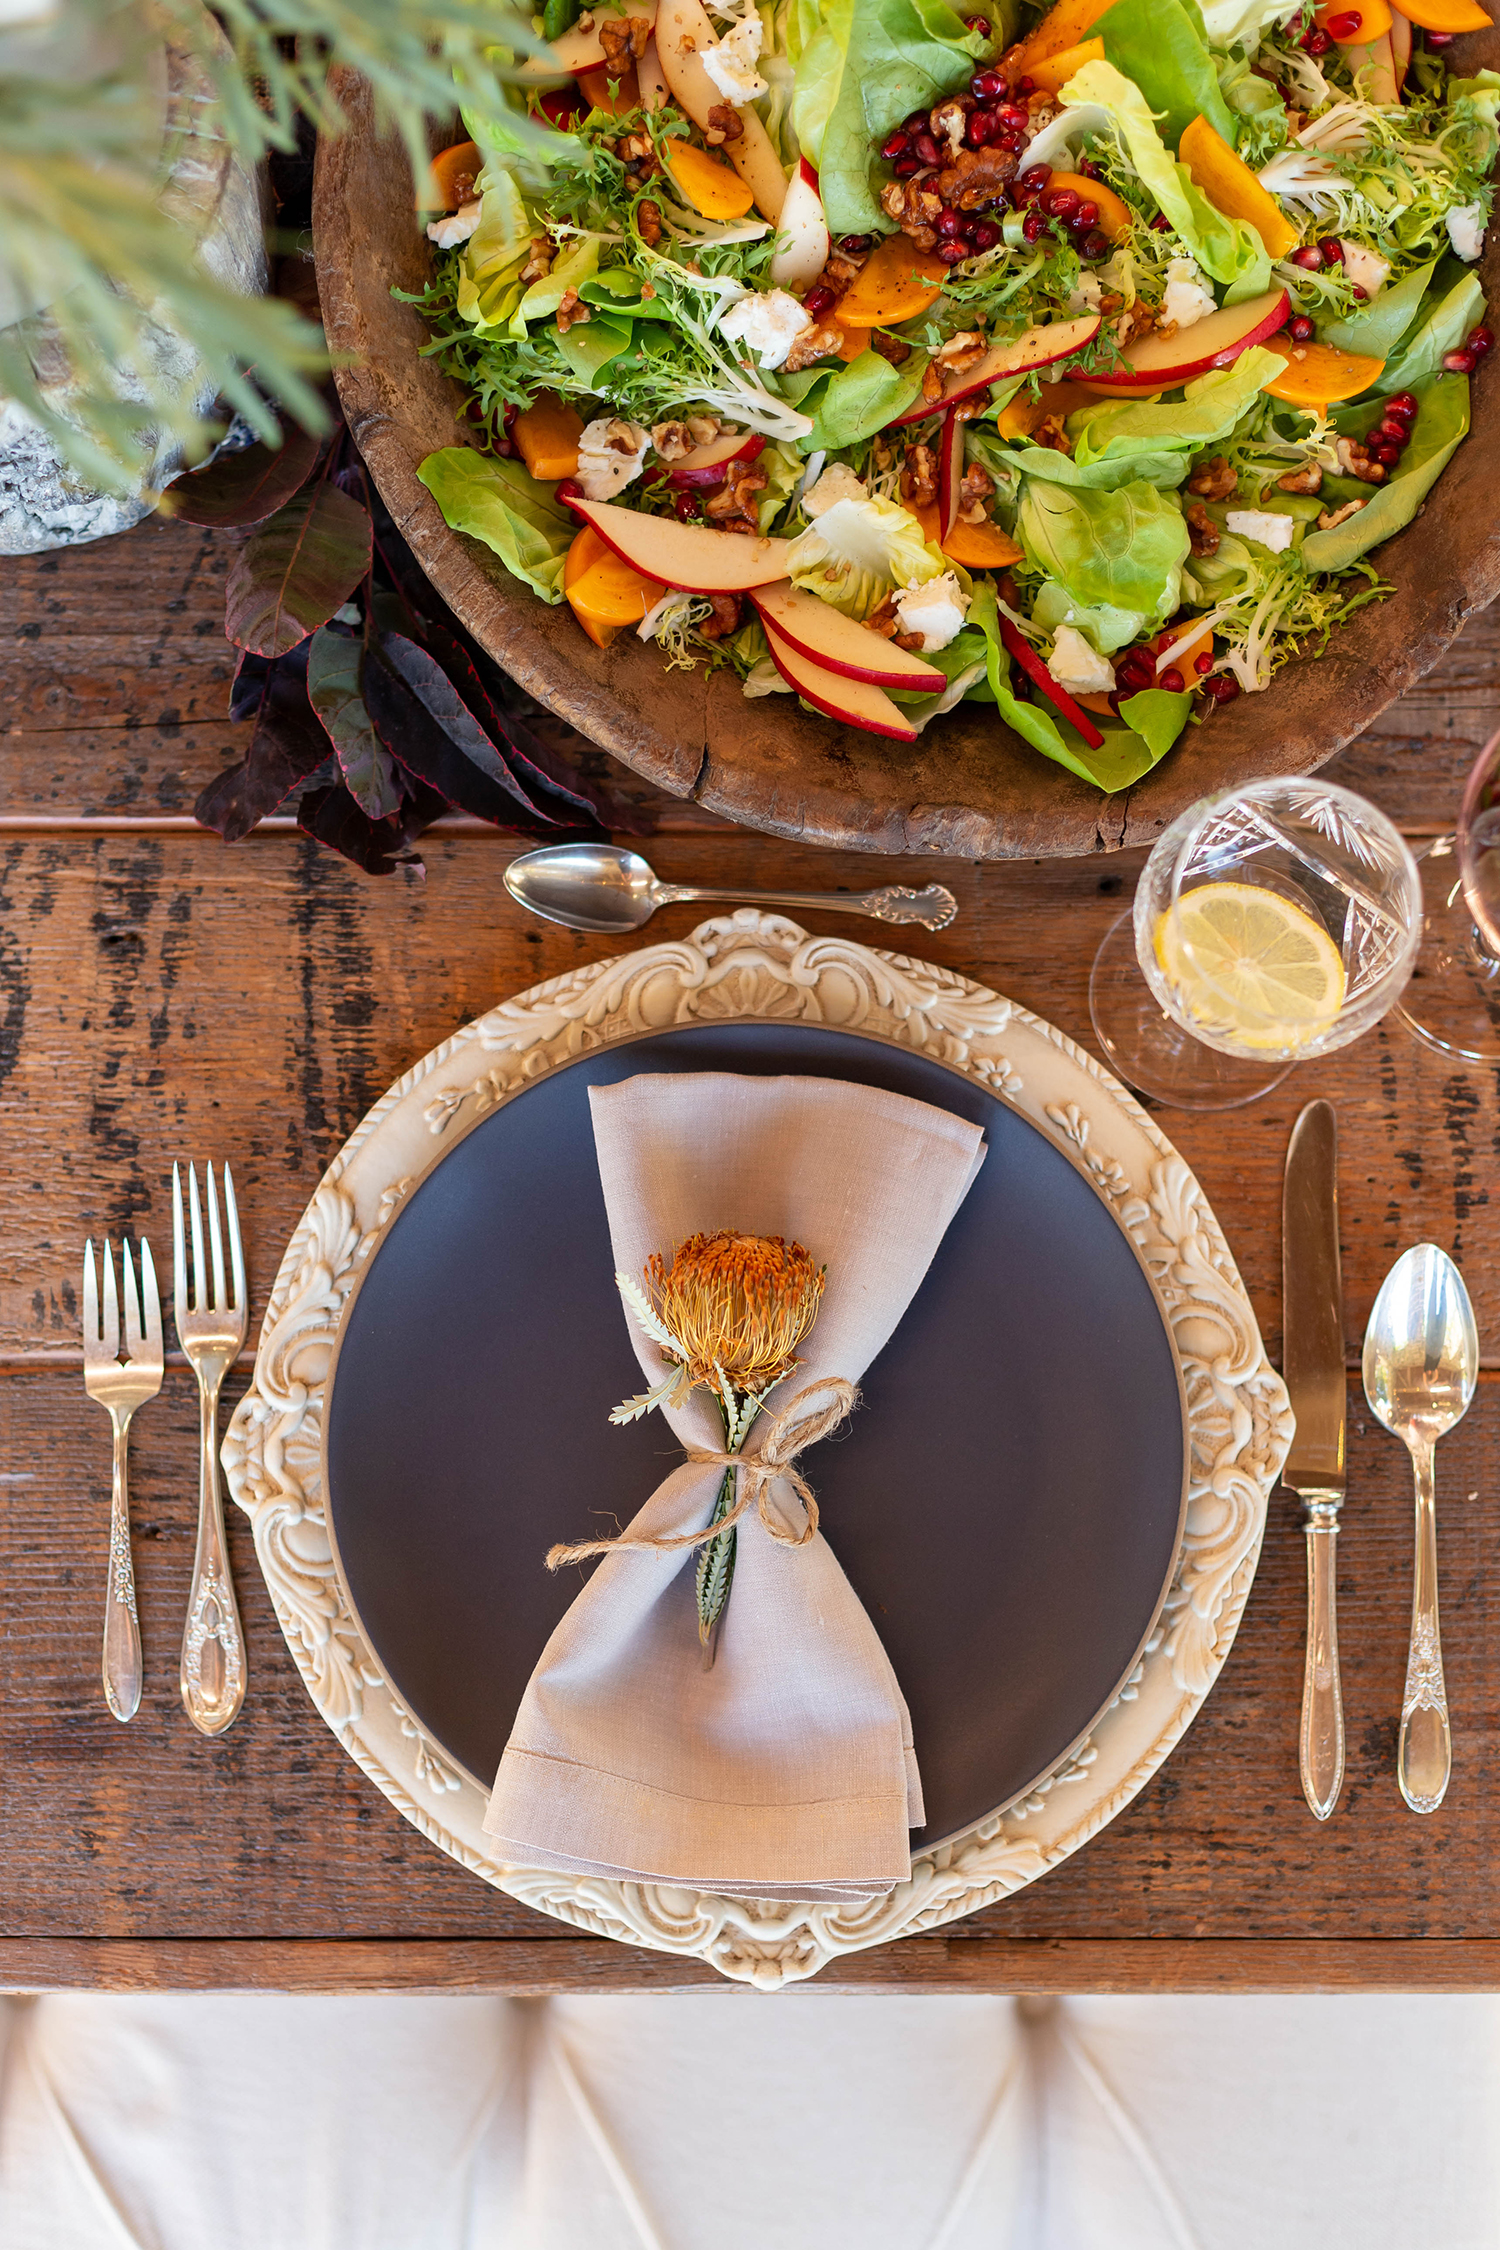 jessica simpson friendsgiving plate with napkin and salad